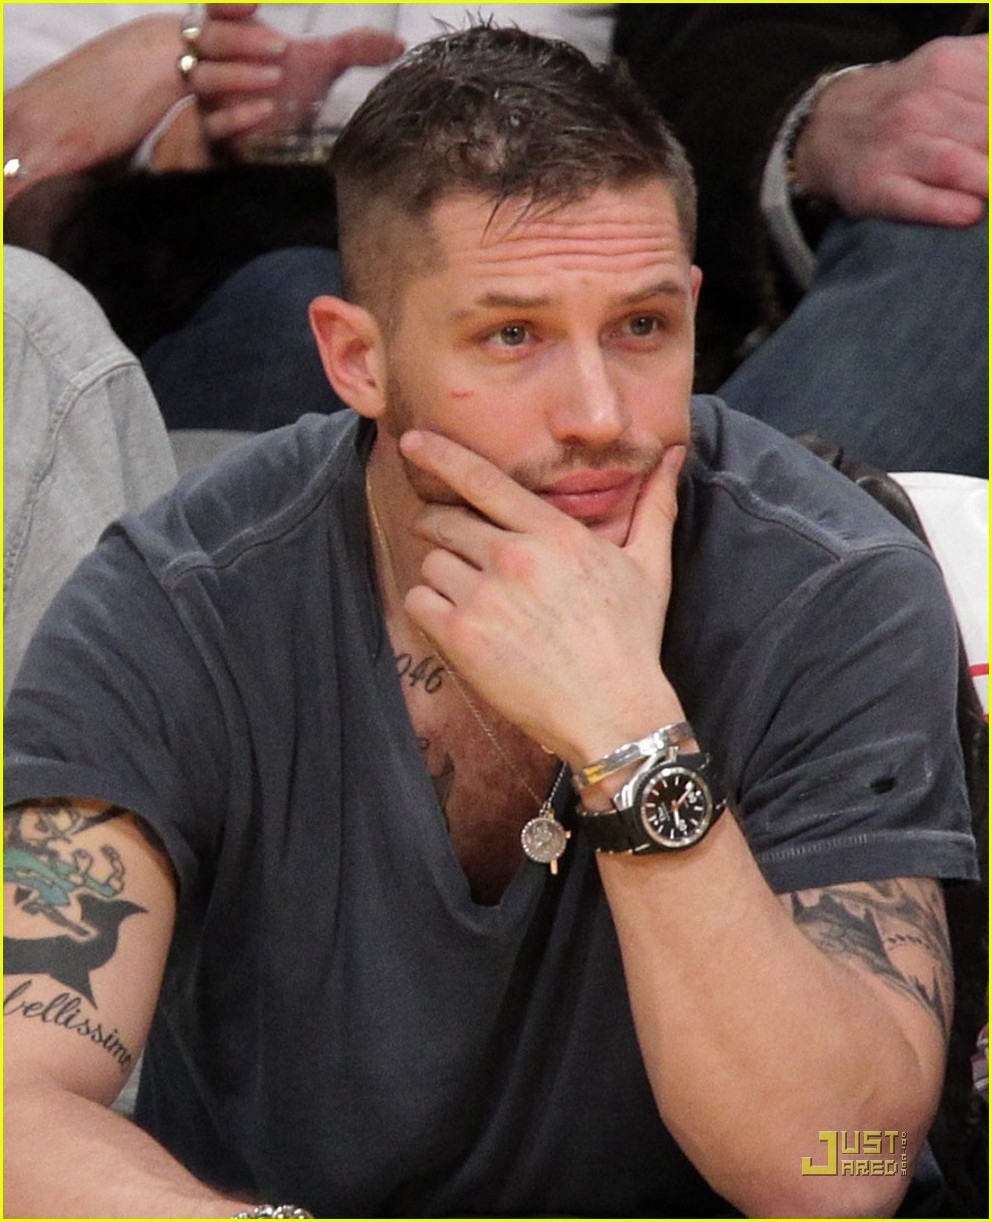 tom-hardy-actor-7c249.jpg